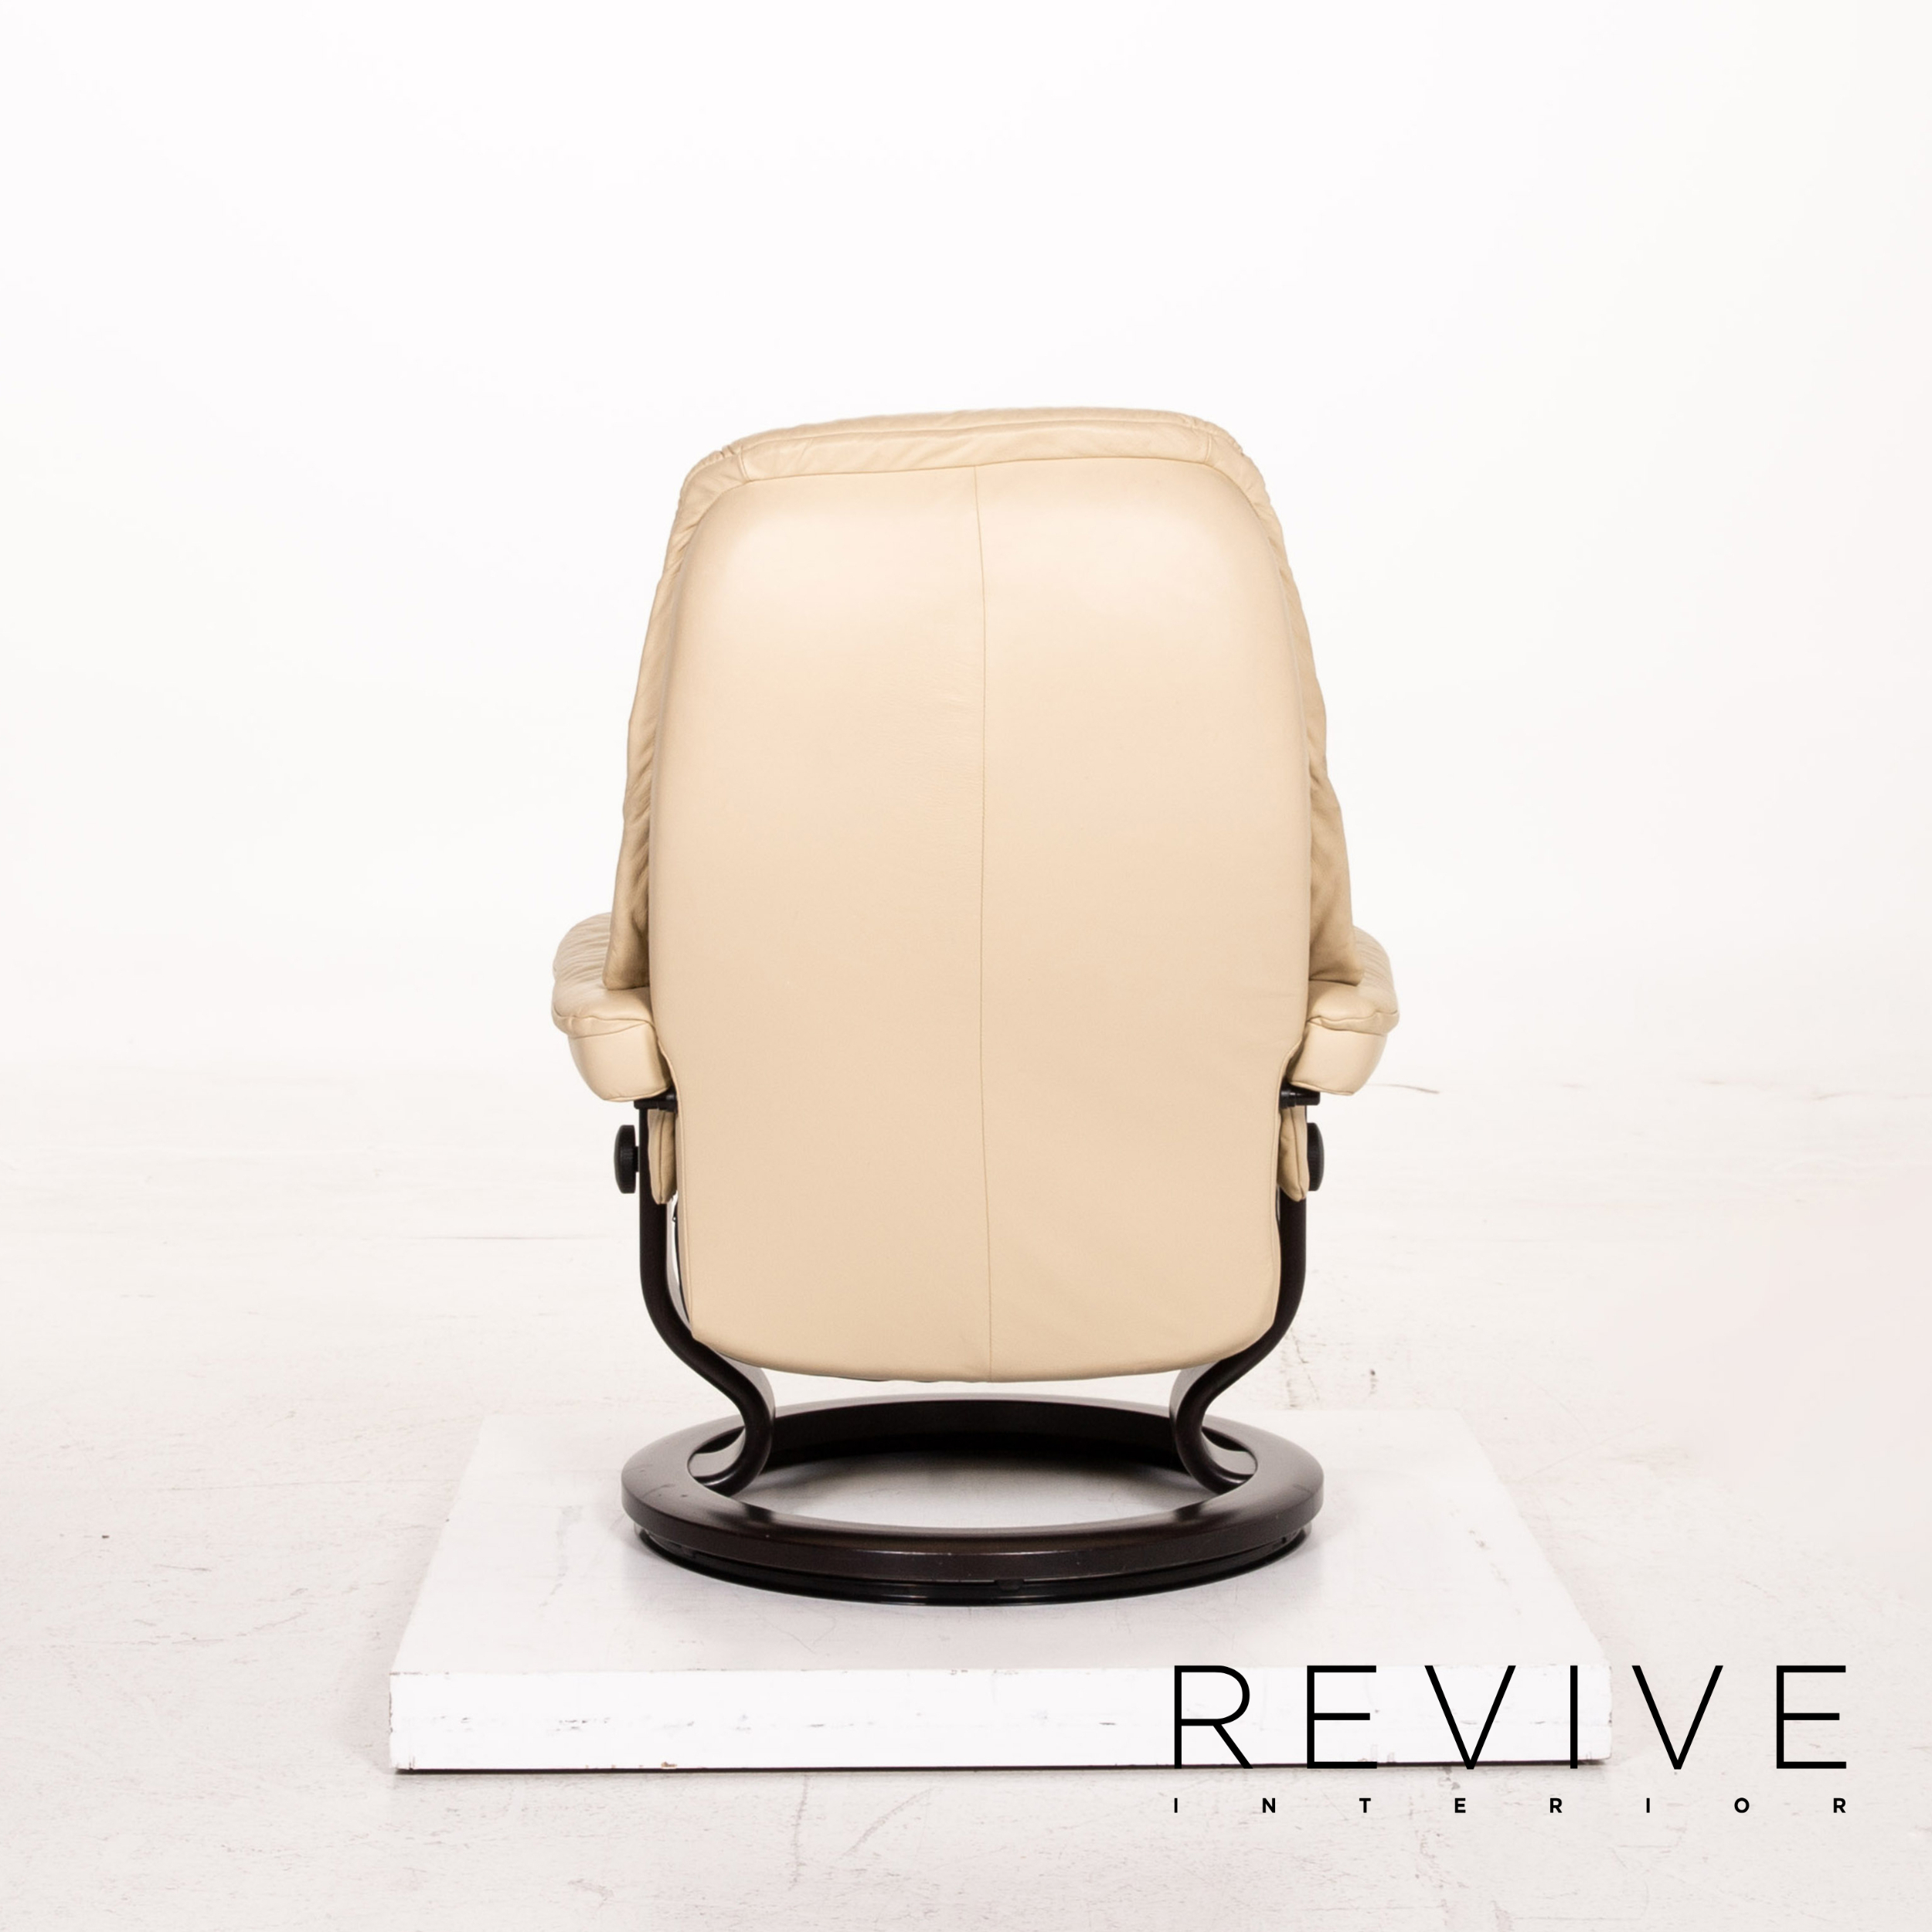 Stressless Sunrise Leather Chairs Incl Stool Cream Reclining Function Function Ebay